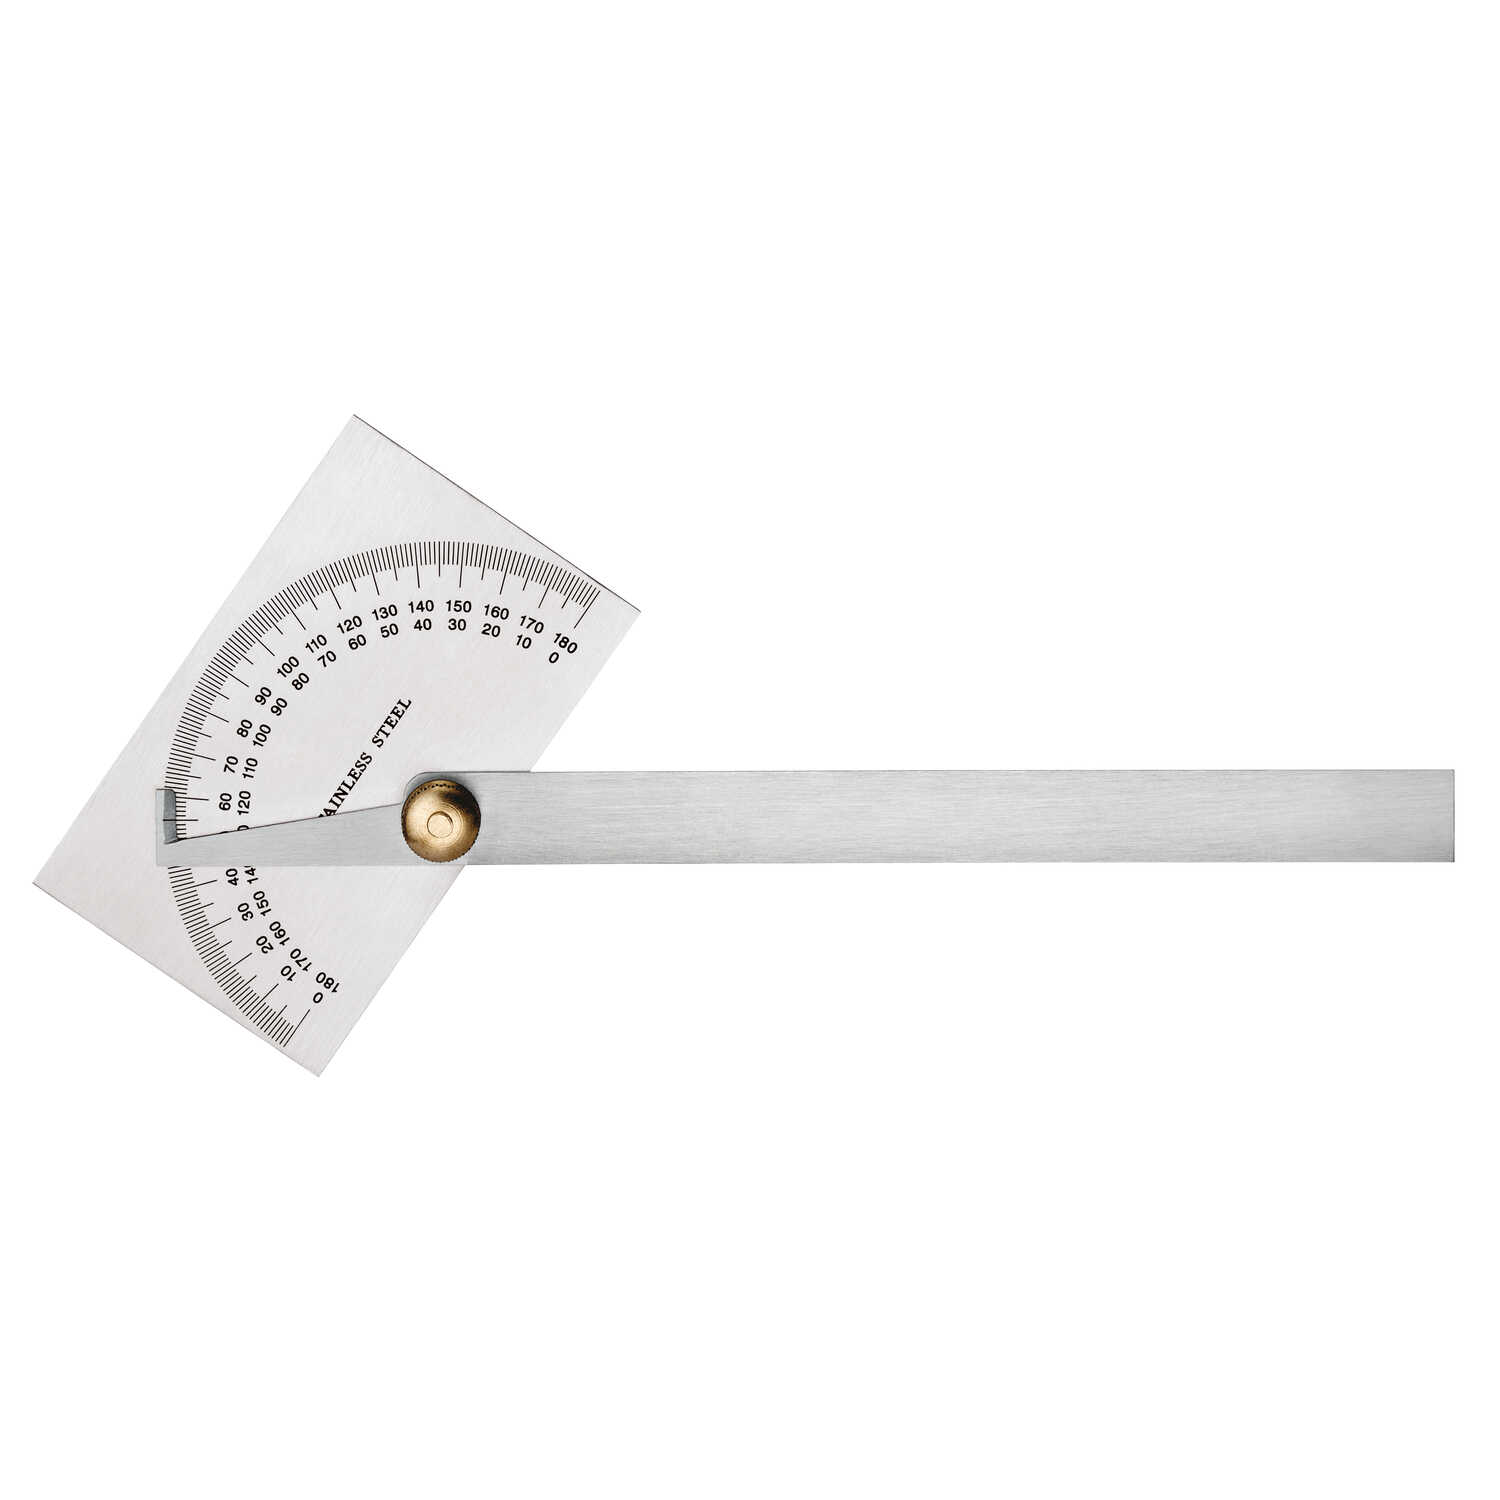 Empire  7-7/8 in. L x 2-3/32 in. W Protractor  6 in. Silver  1 pc.